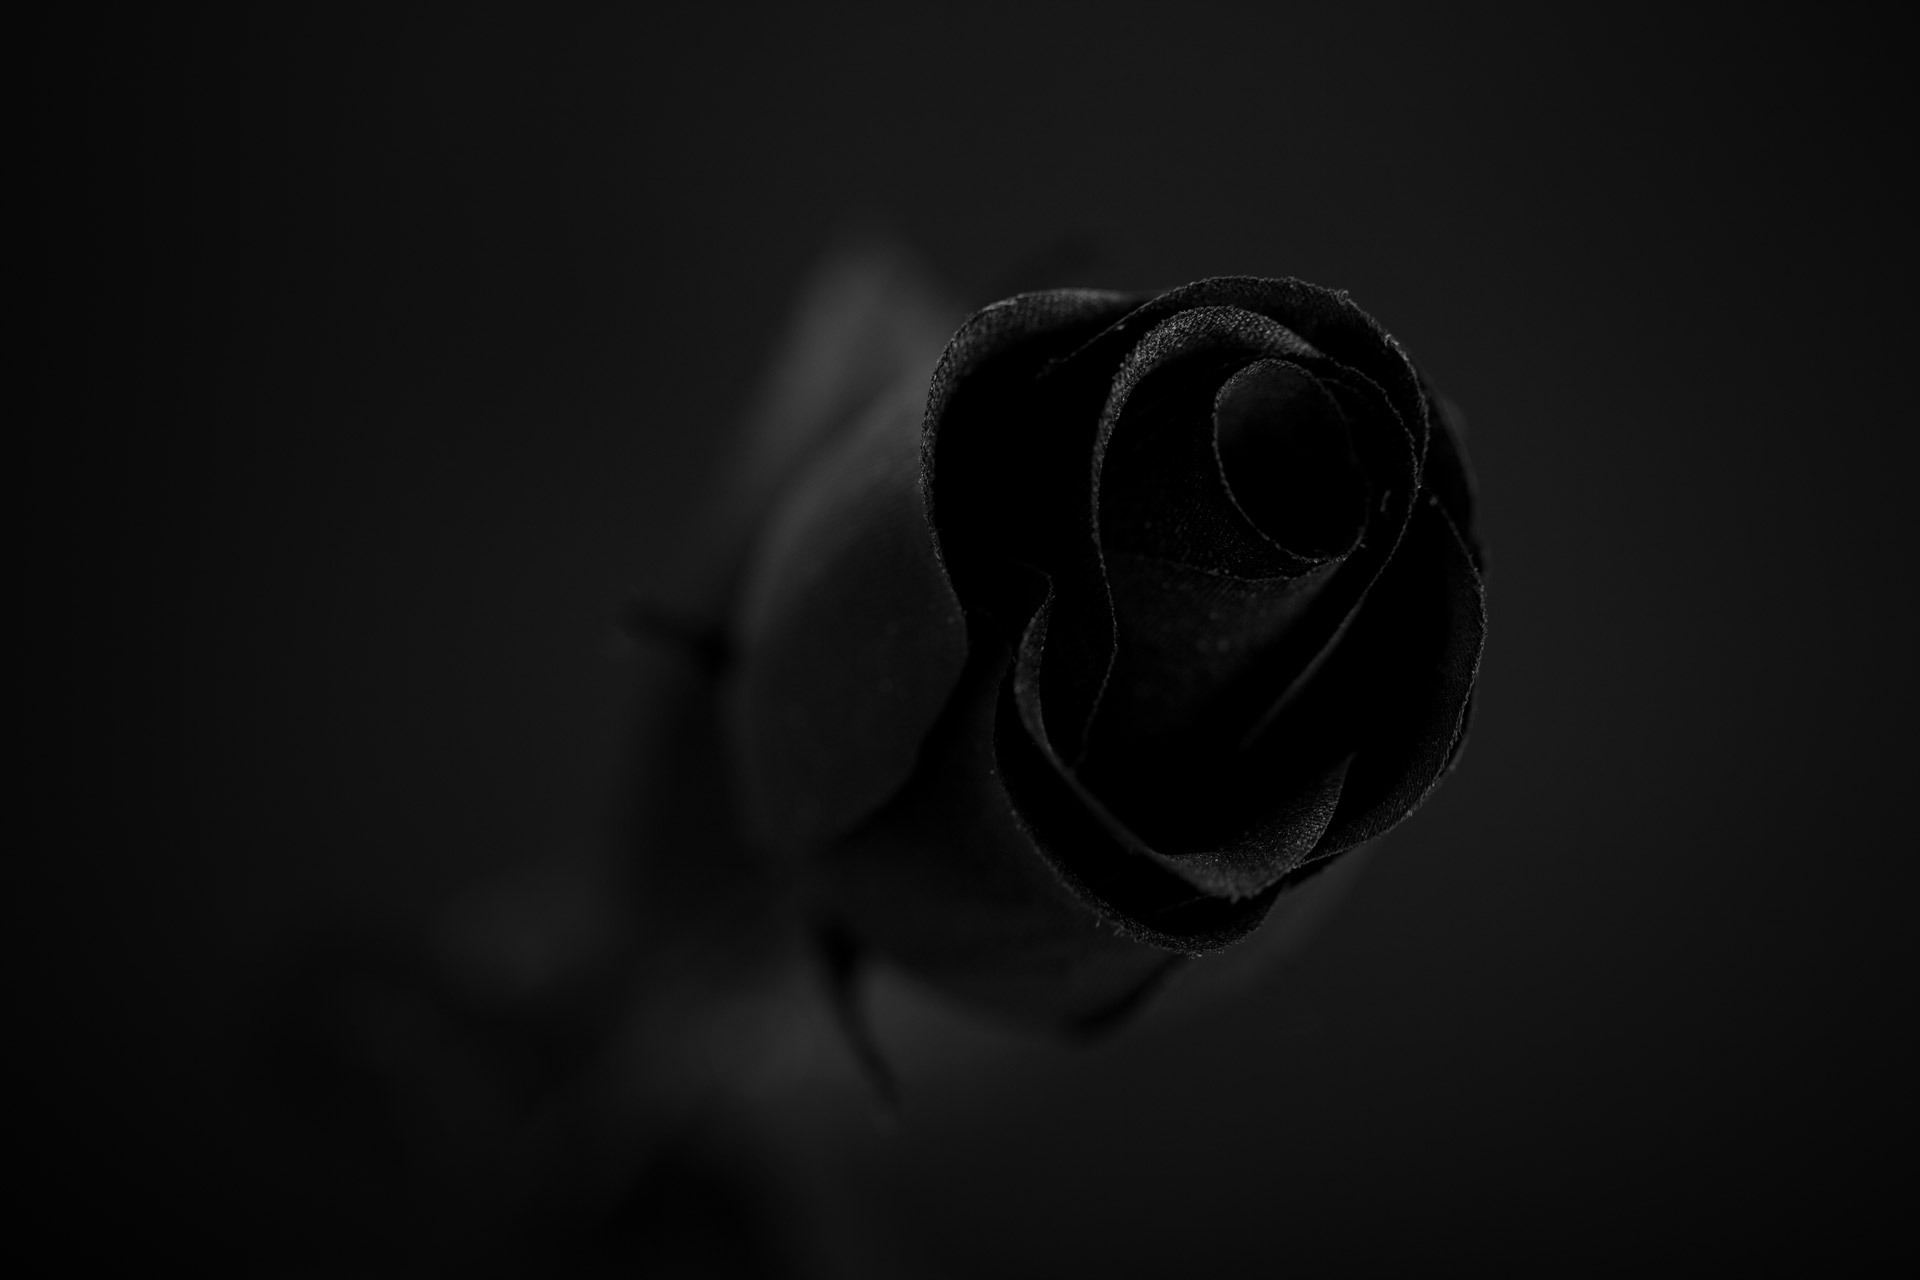 Black Rose Images